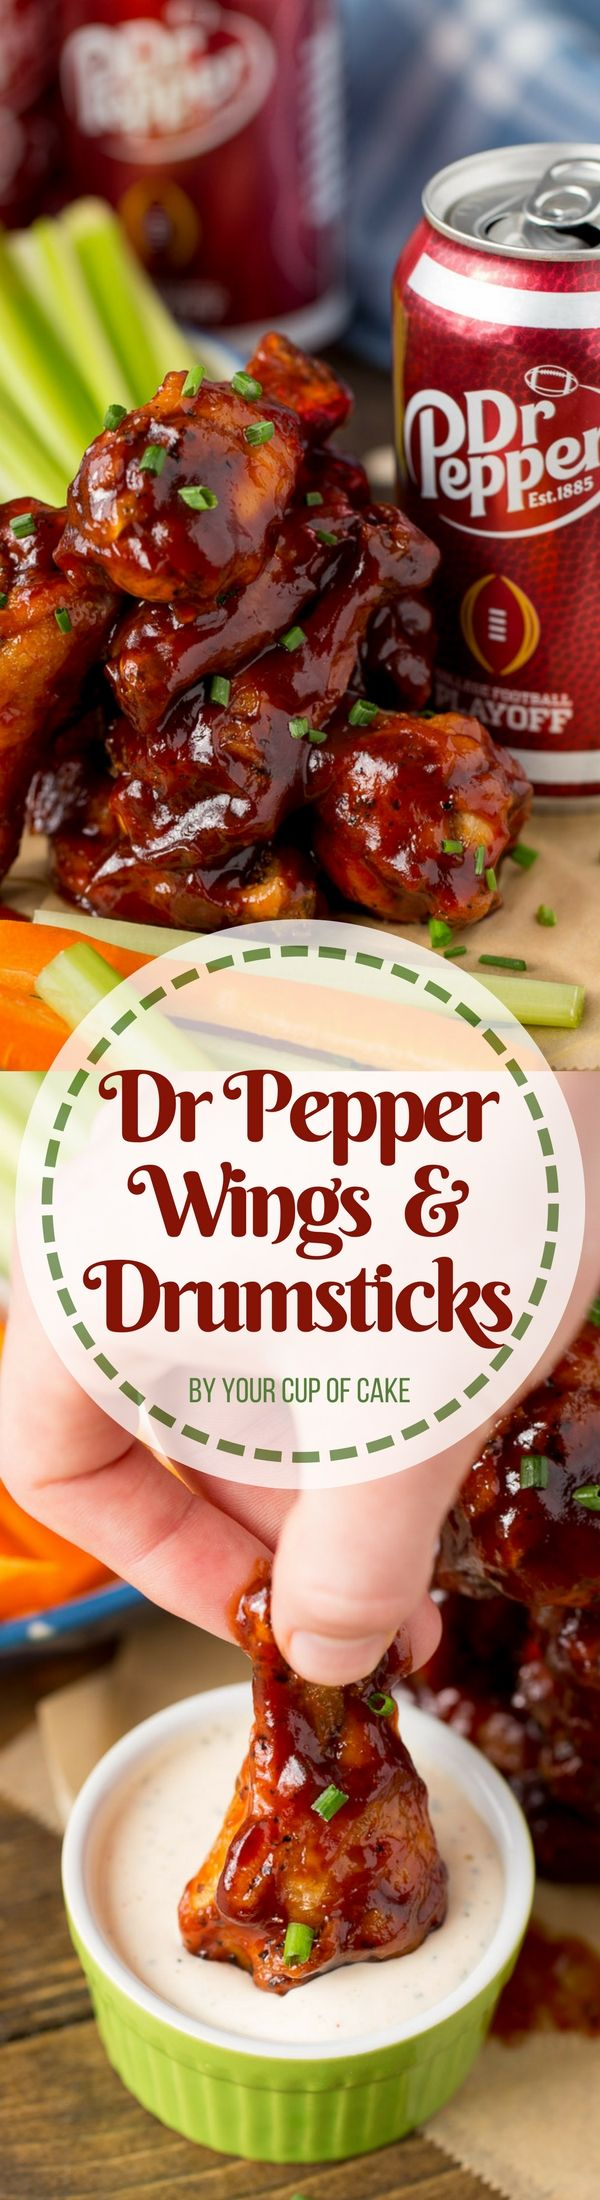 Dr Pepper Wings and Drumsticks is the perfect game day party food! This Dr Pepper BBQ sauce recipe is awesome!